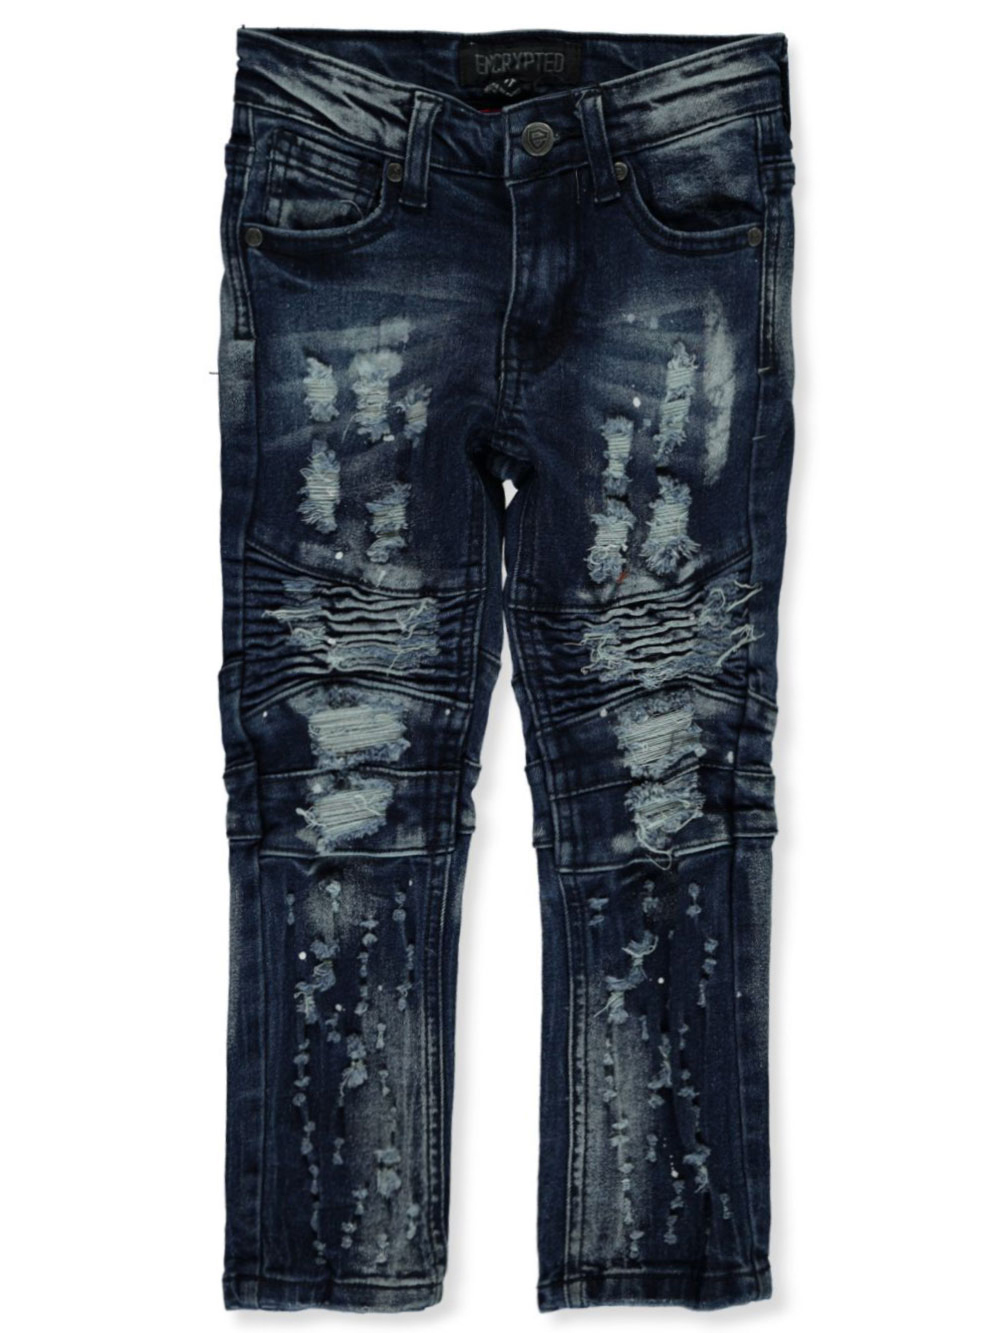 Encrypted Boys Moto Distressed Paint Slim Jeans